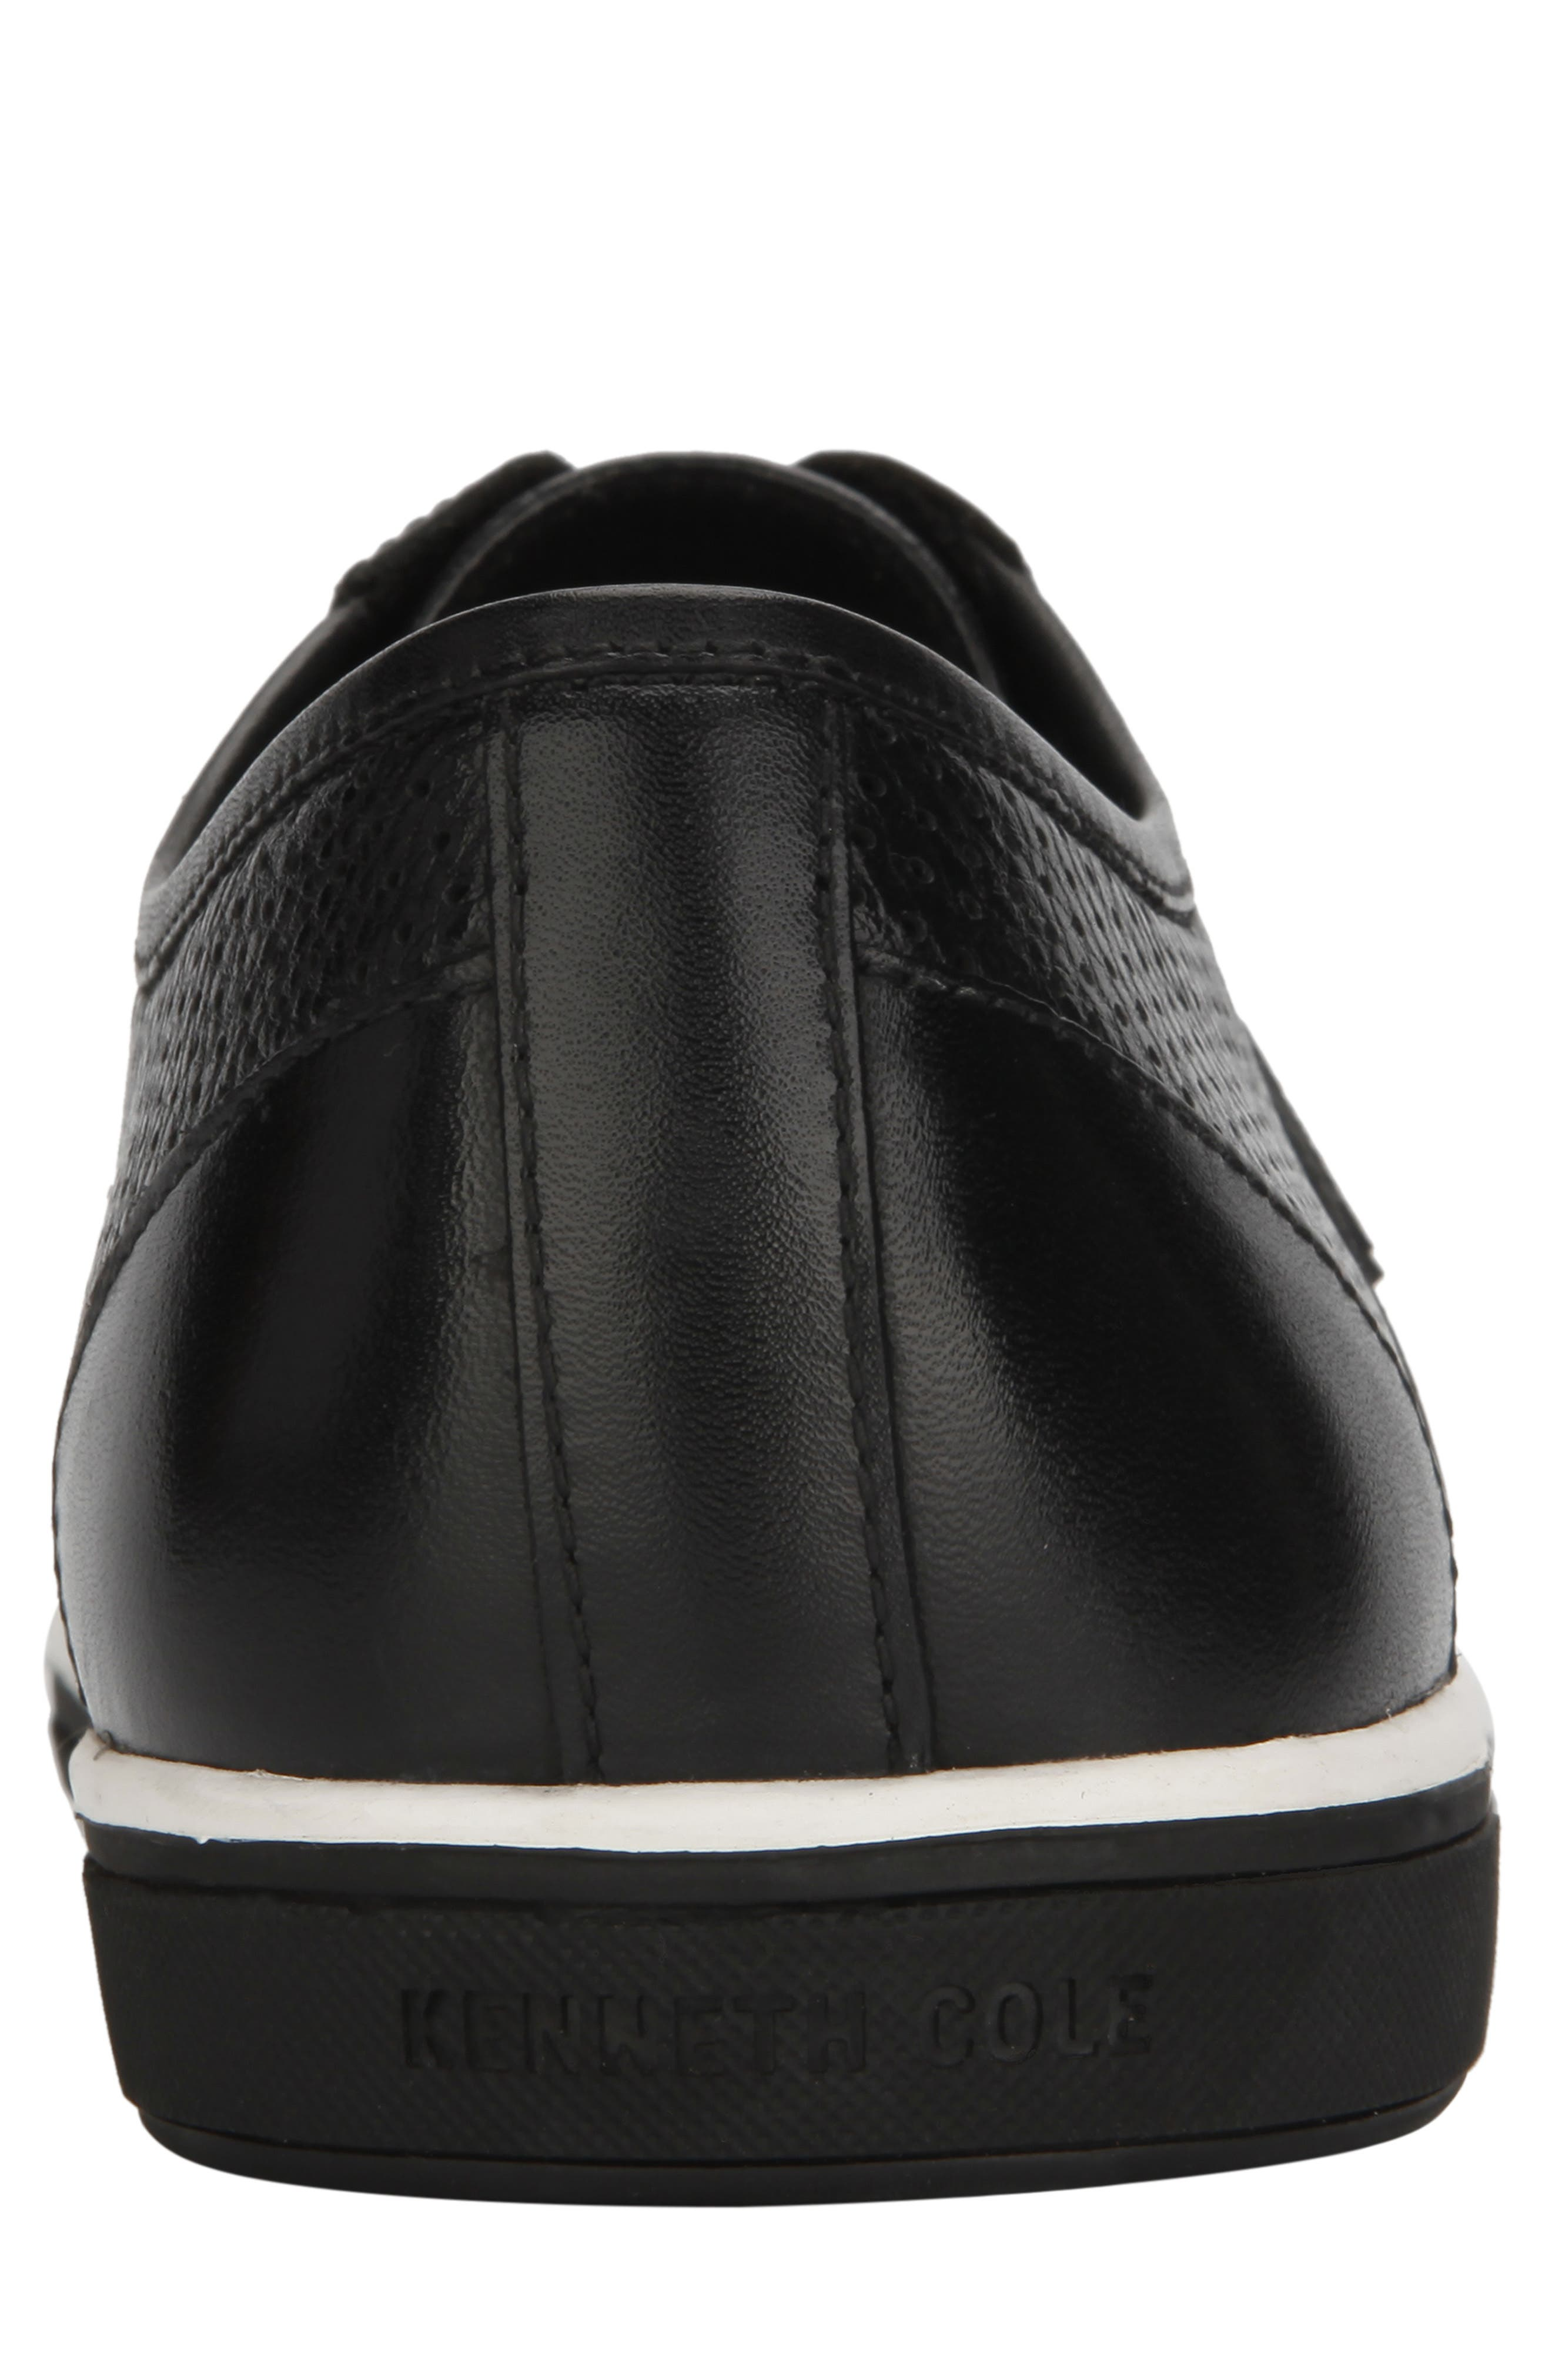 KENNETH COLE NEW YORK, Initial Step Sneaker, Alternate thumbnail 5, color, BLACK LEATHER